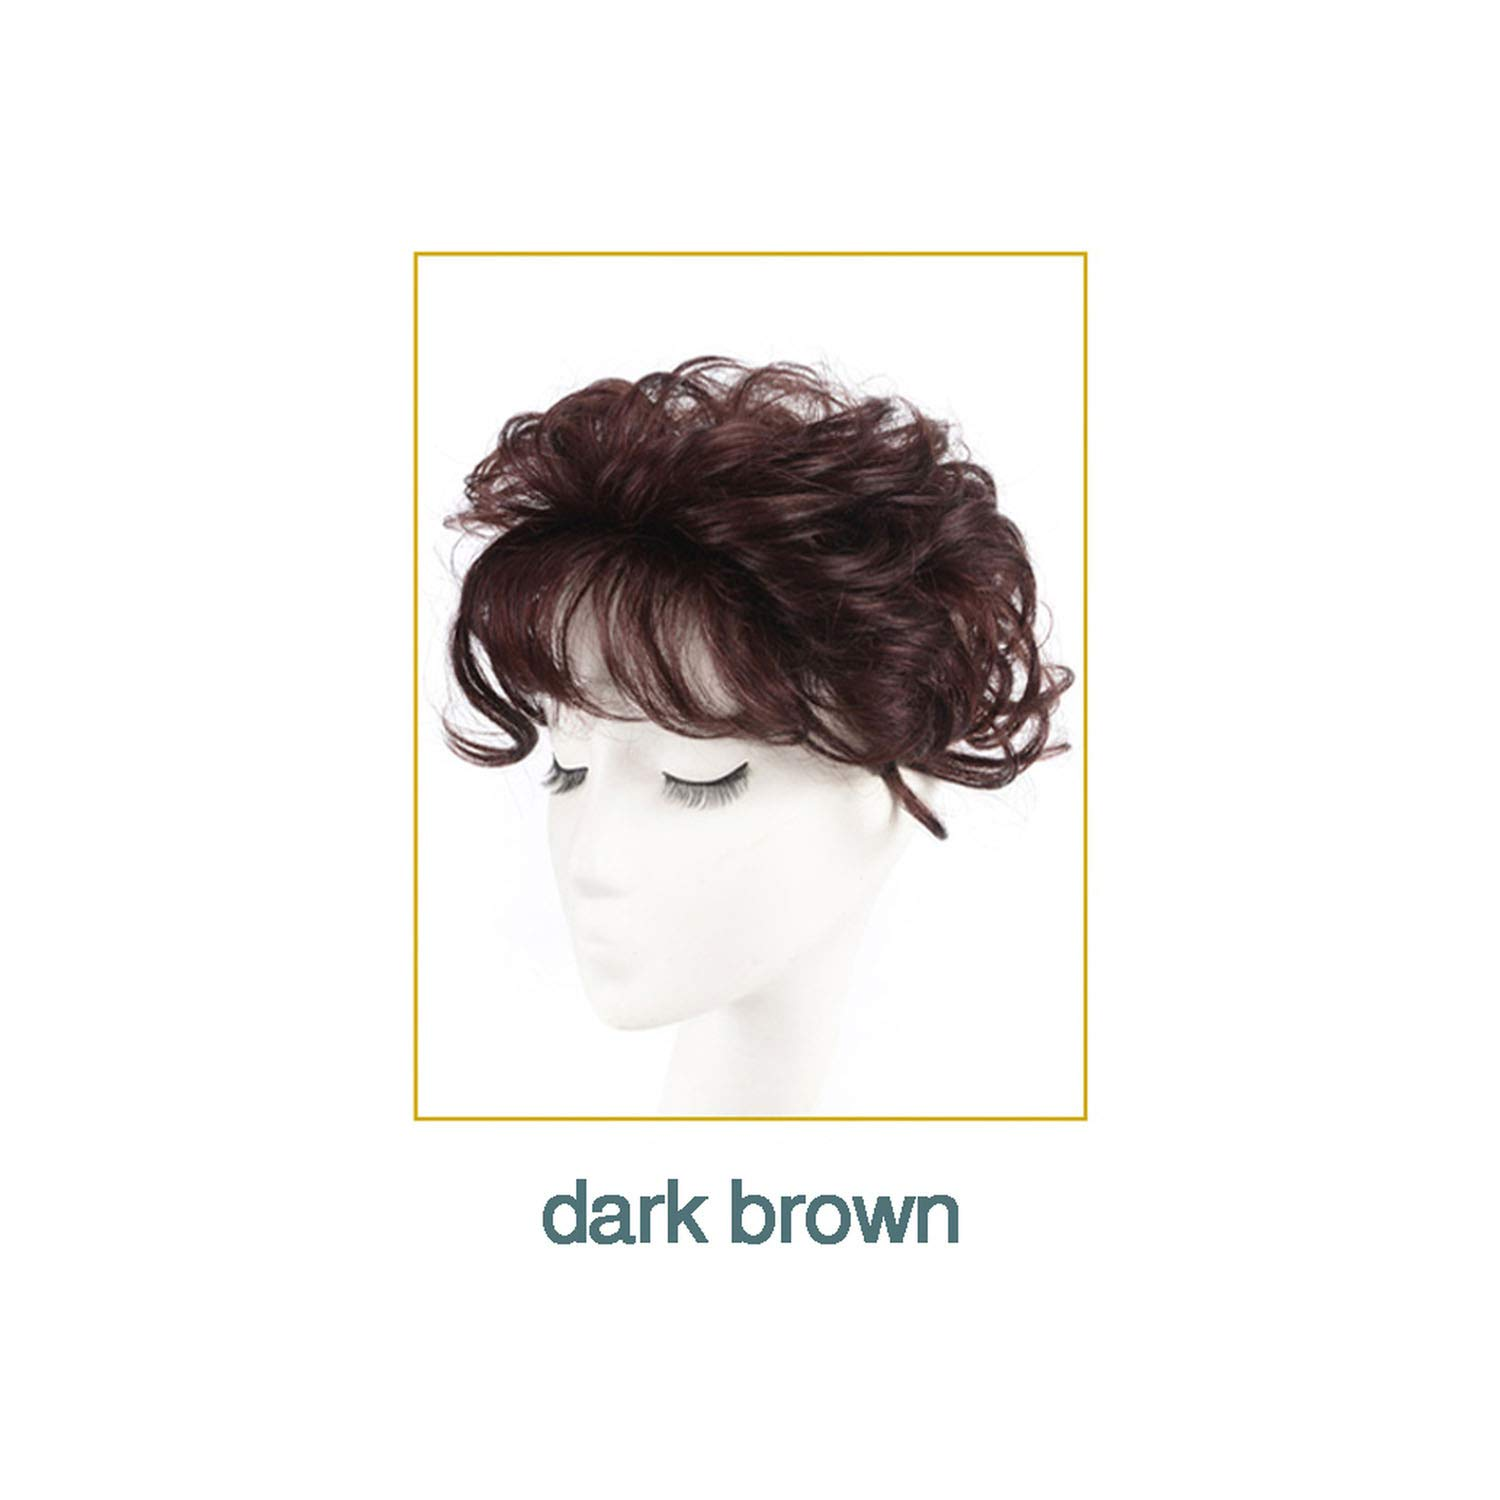 LIES Toupee with Bangs Synthetic Curly Hair Hand made Topper Hairpiece Clip In Hair Extensions Clip Hair Topper Synthetic Clip,dark brown,Picture display leng